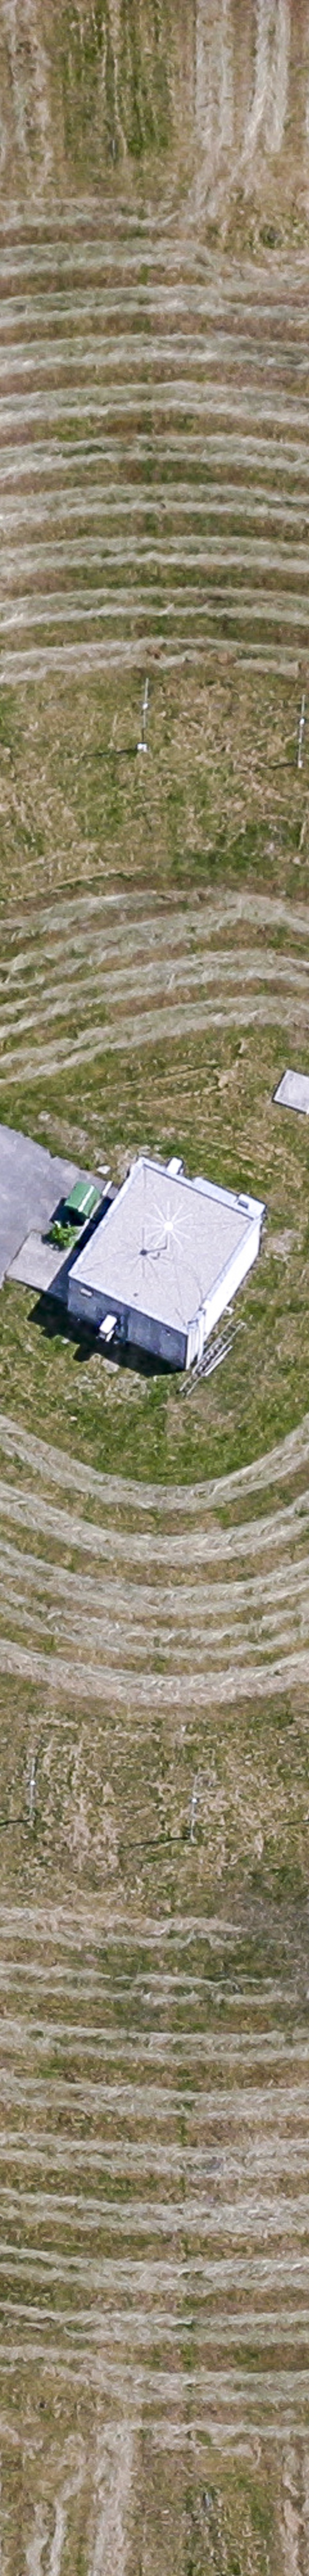 Aerial view of the traces of the mowing at an antenna station - Klaus Leidorf Aerial Photography